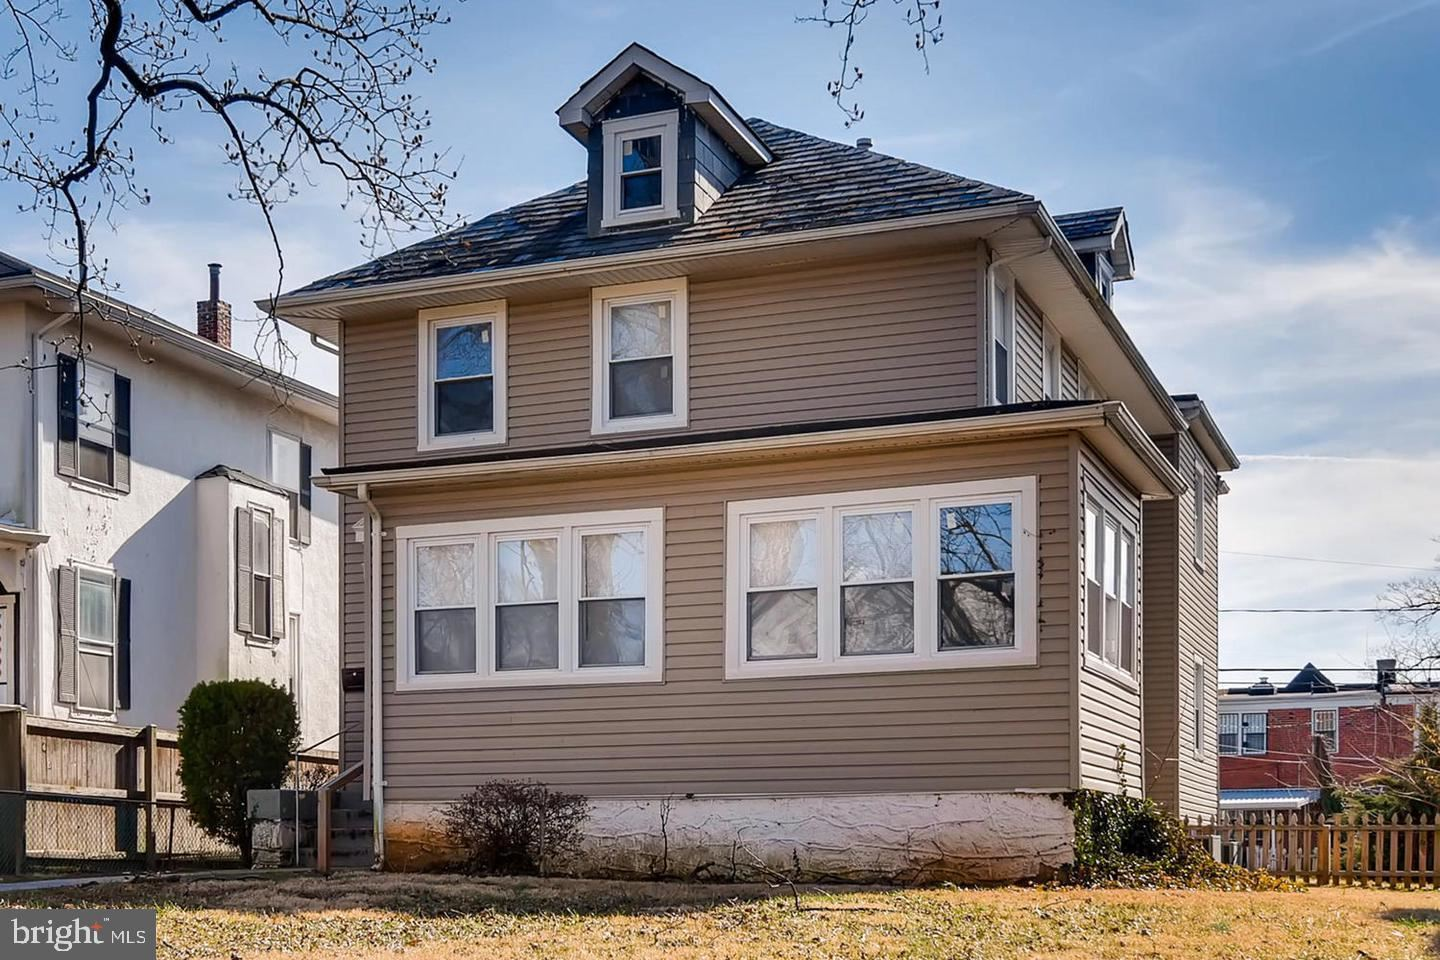 4131 W FOREST PARK AVE, Baltimore, MD 21207 - MLS#: MDBA539832